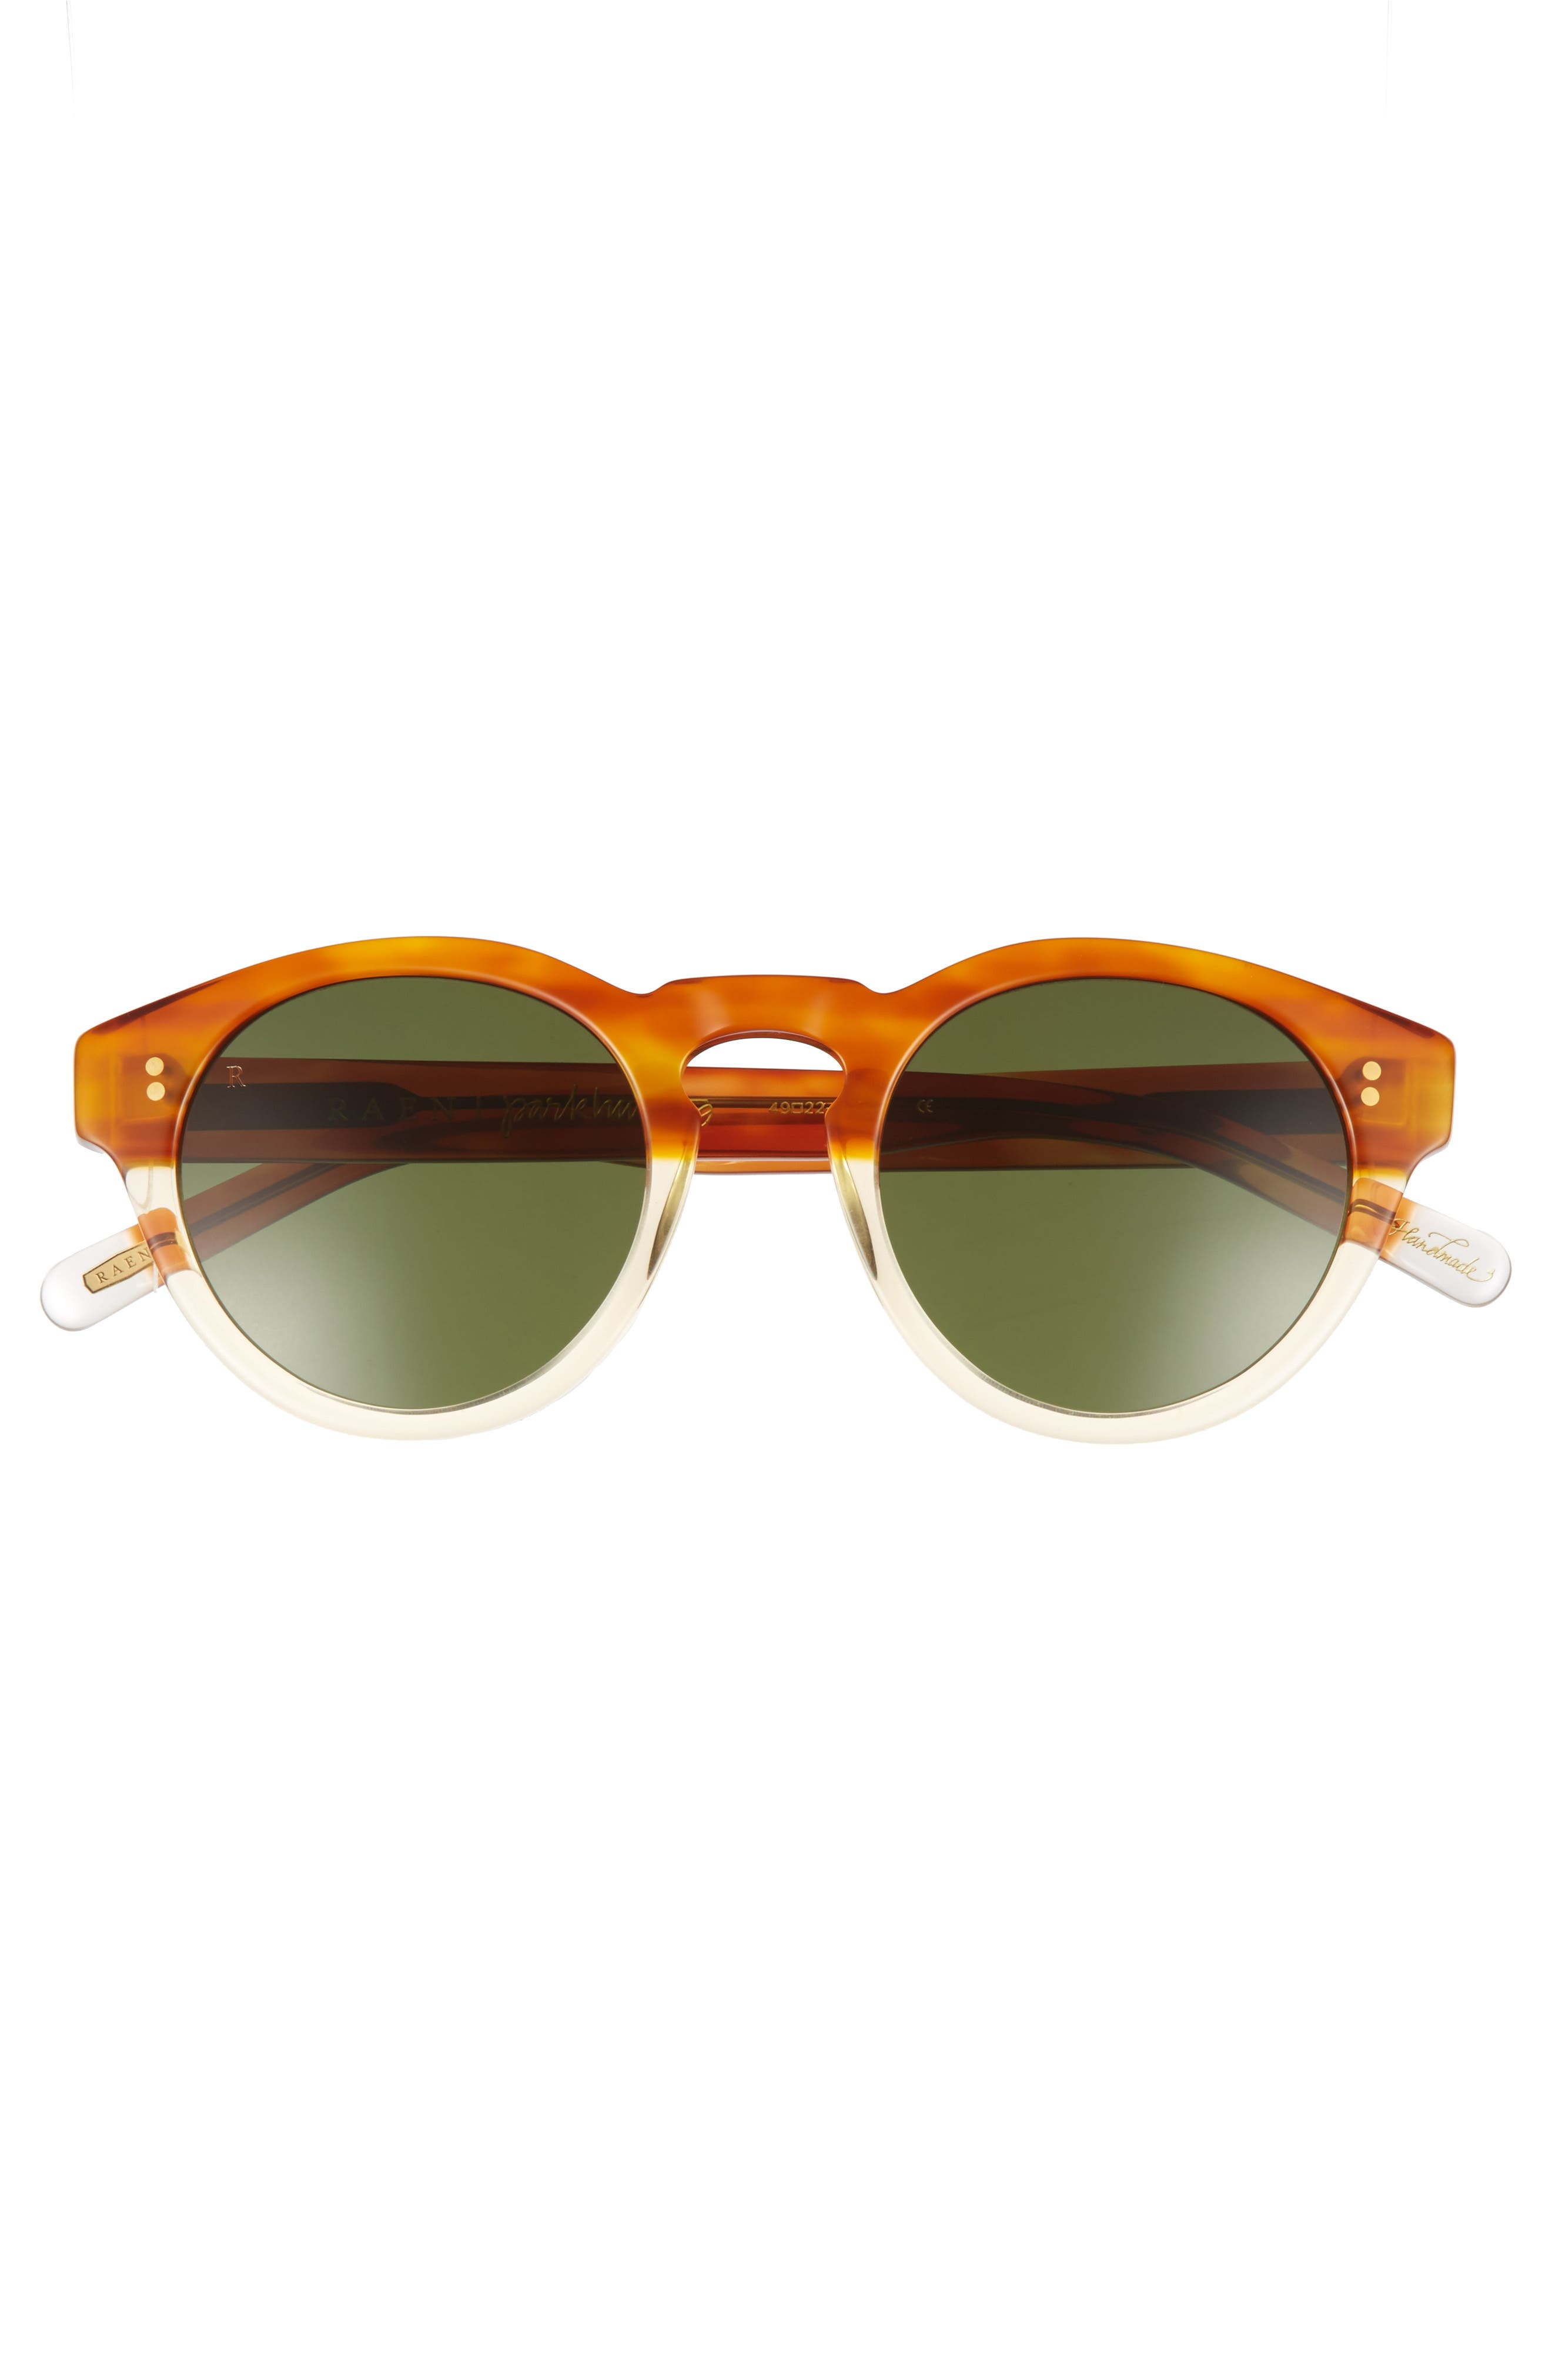 Parkhurst 49mm Sunglasses,                             Alternate thumbnail 2, color,                             Honey Havana/ Green